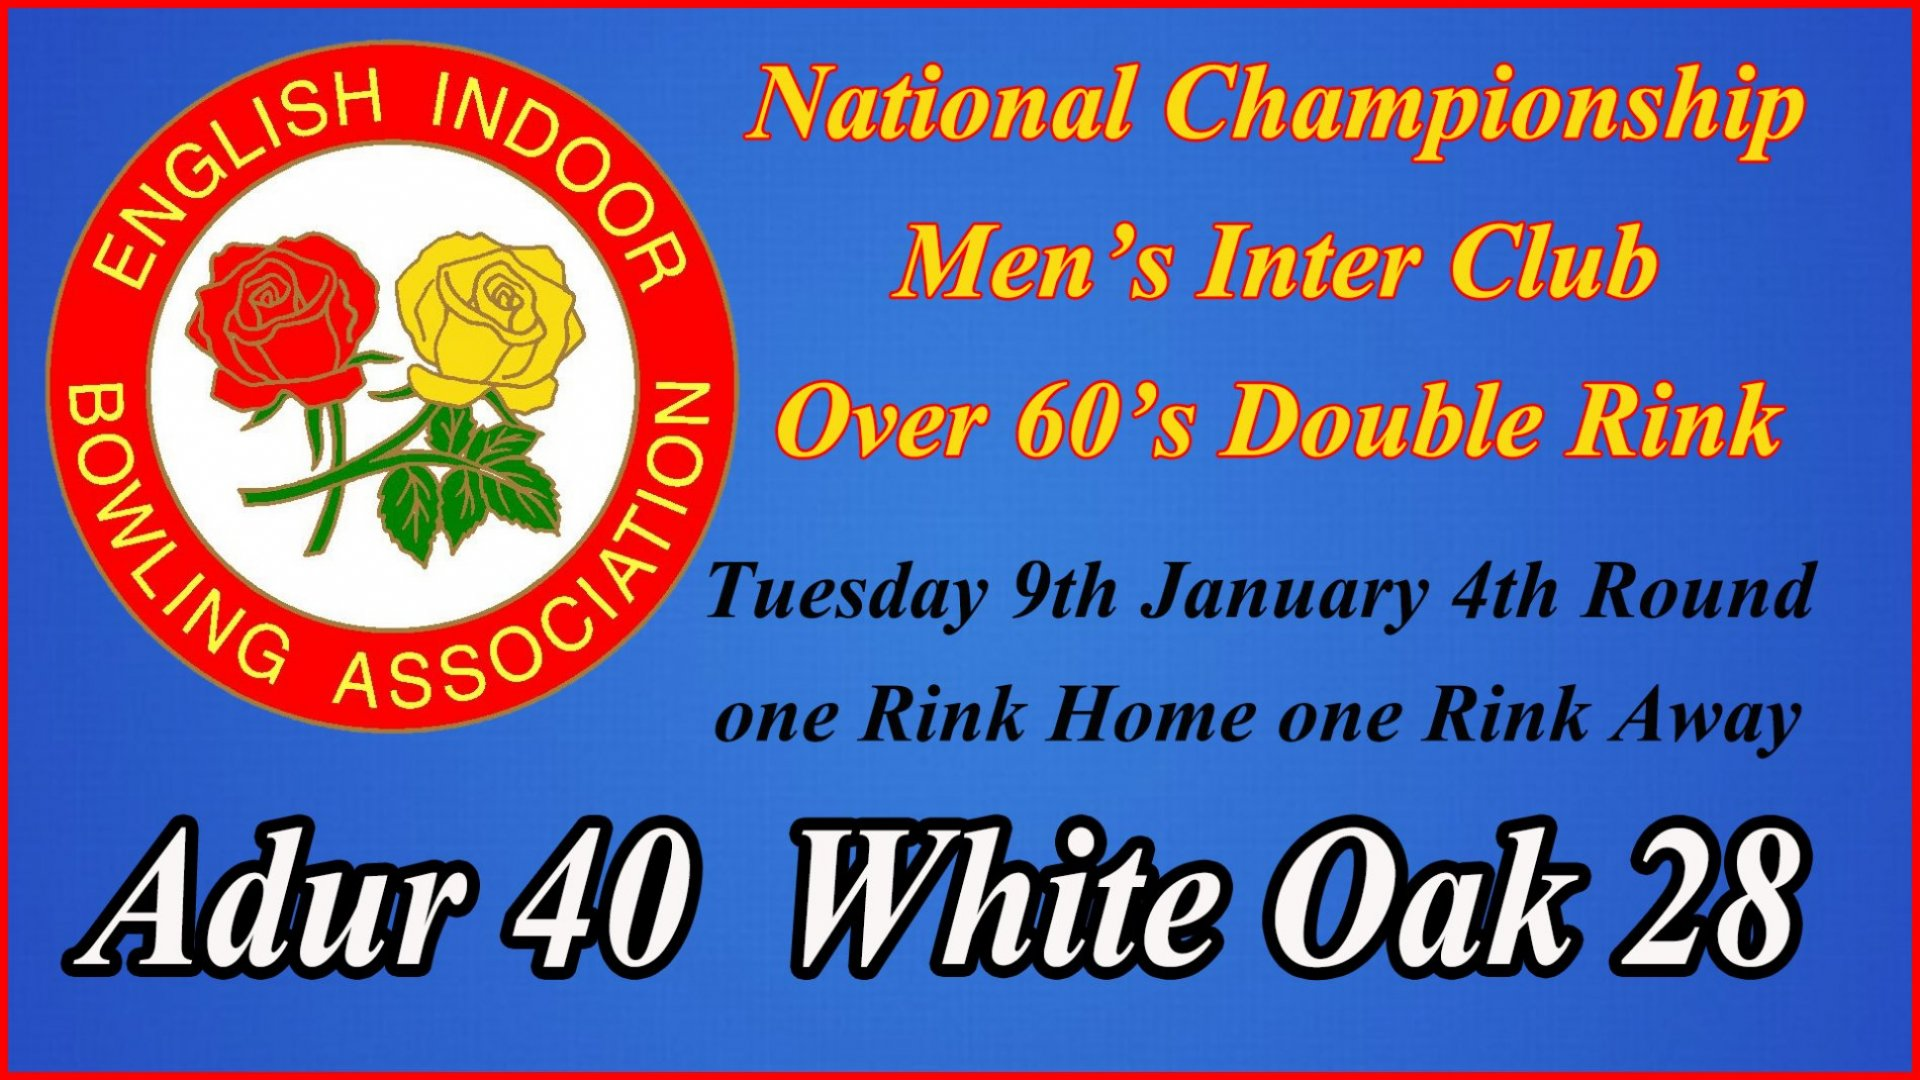 Men's Inter club National Championships Over 60's Double Rink 4th Round - Adur v White Oak A Result (9.1.18)